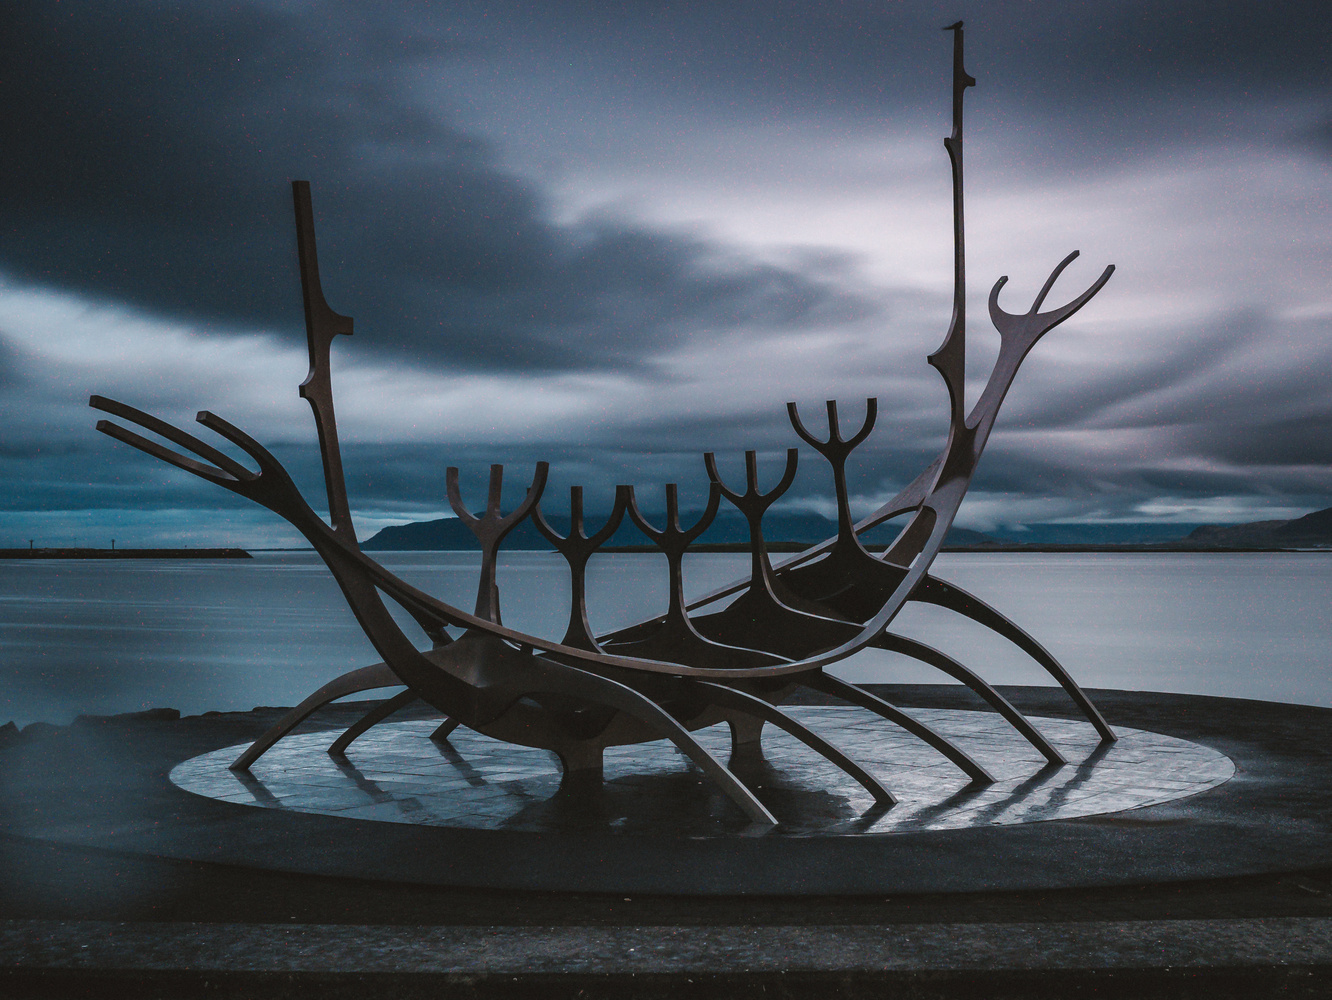 The Sun Voyager by Sam Green